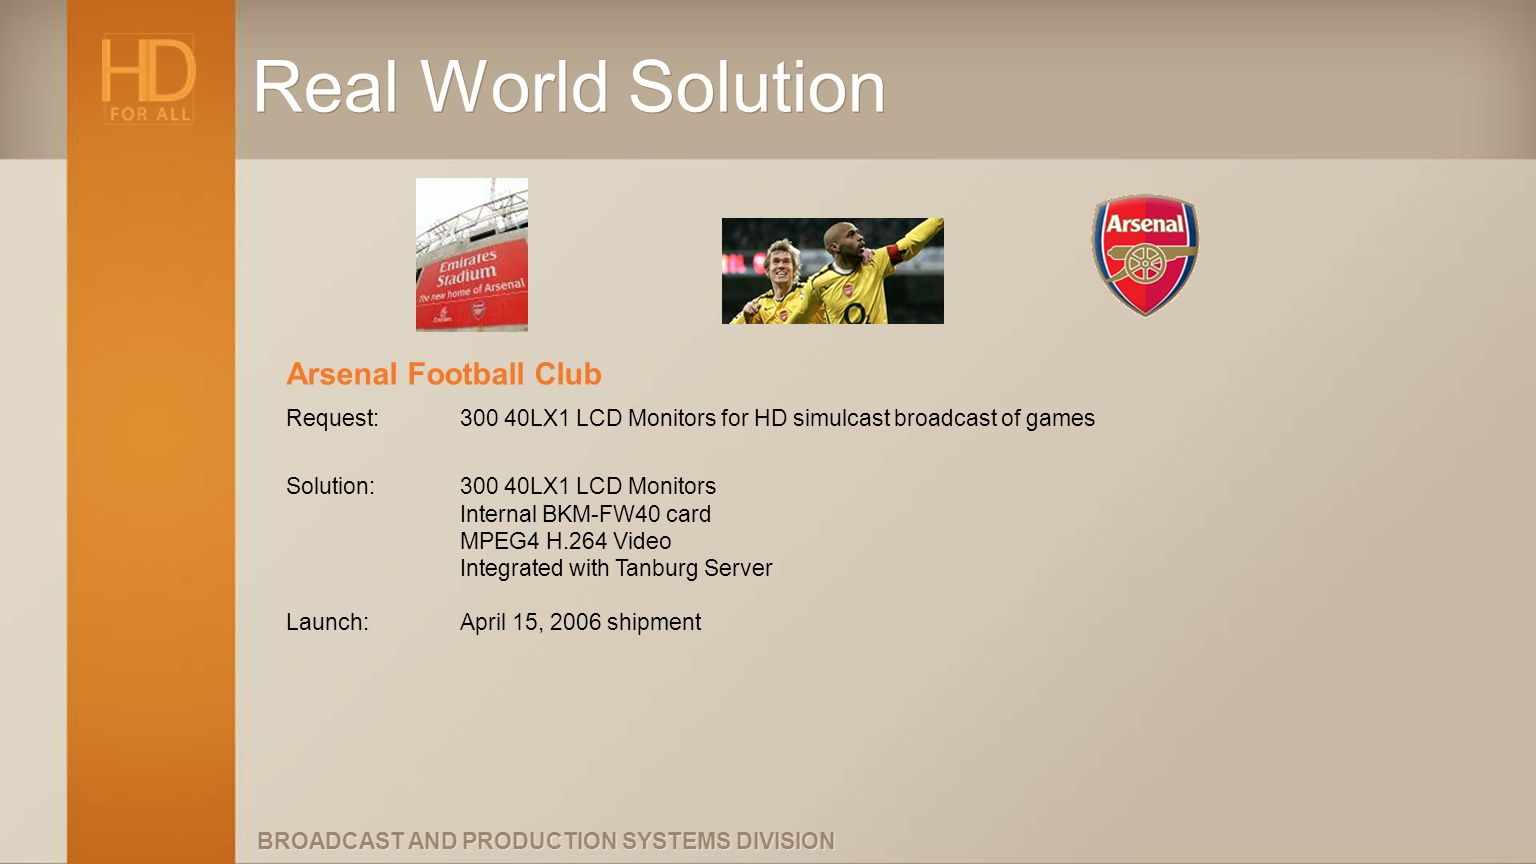 BROADCAST AND PRODUCTION SYSTEMS DIVISION Real World Solution Arsenal Football Club Request:300 40LX1 LCD Monitors for HD simulcast broadcast of games